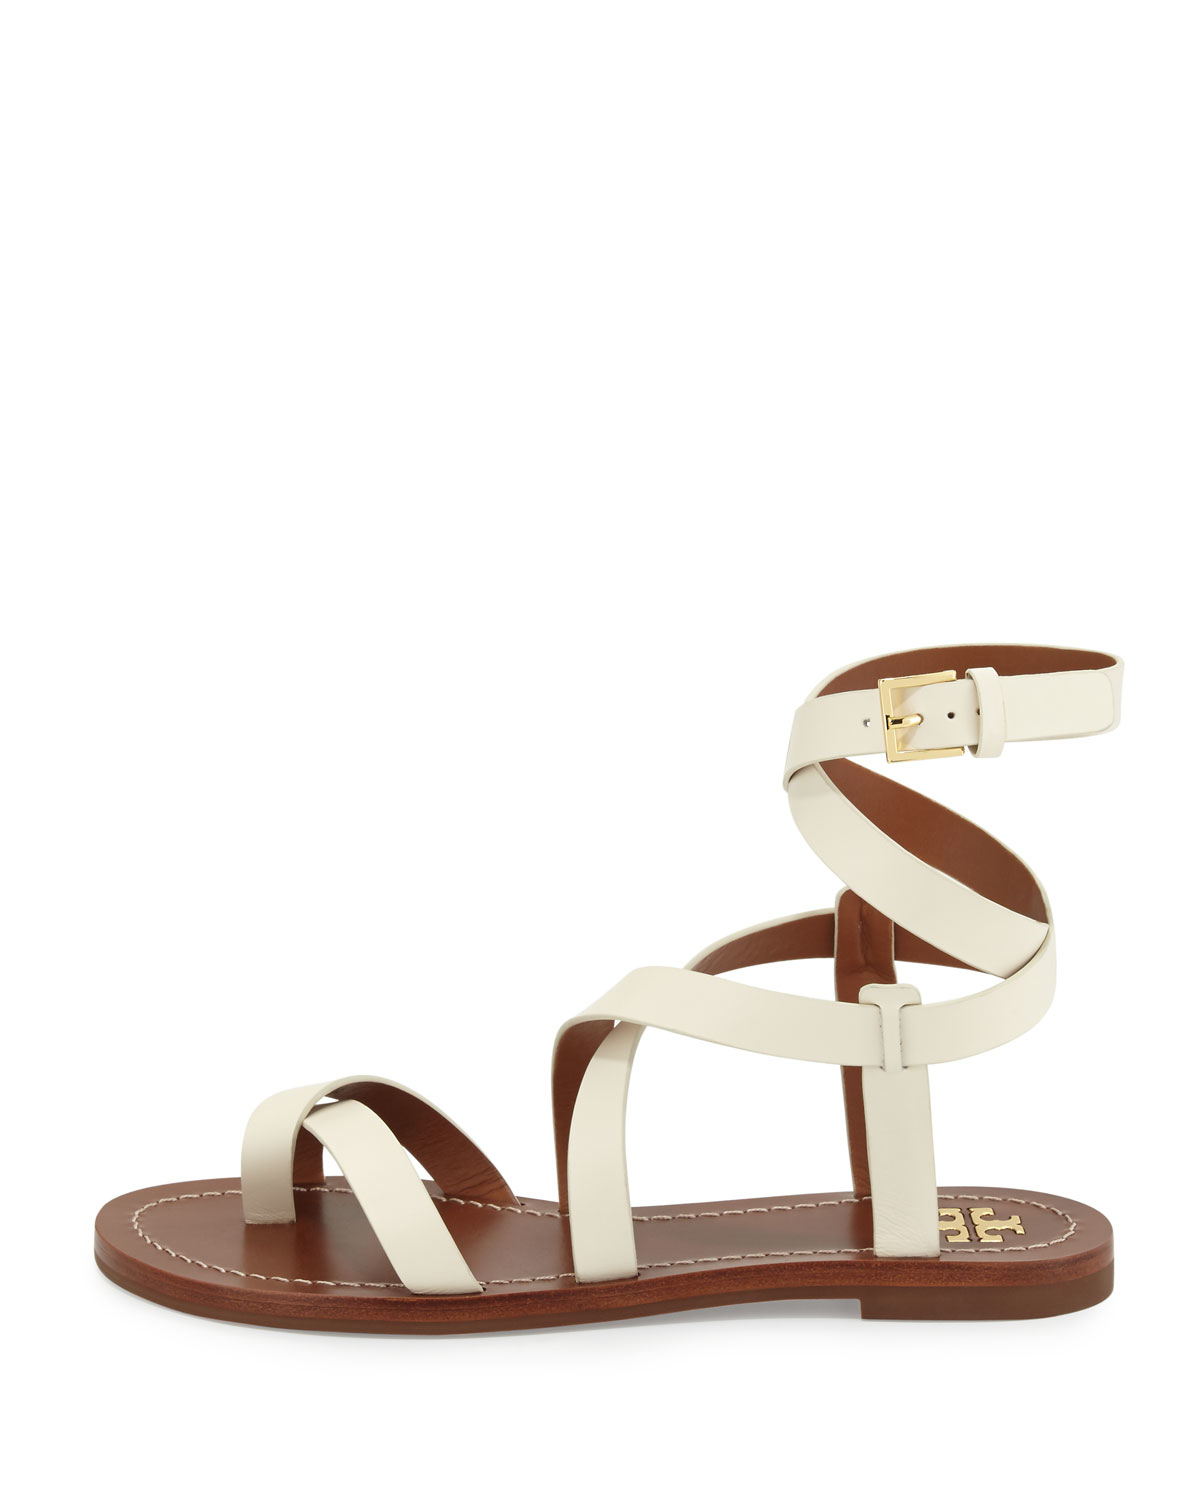 c4f47bde8977 Lyst - Tory Burch Patos Crisscross Leather Sandal in White